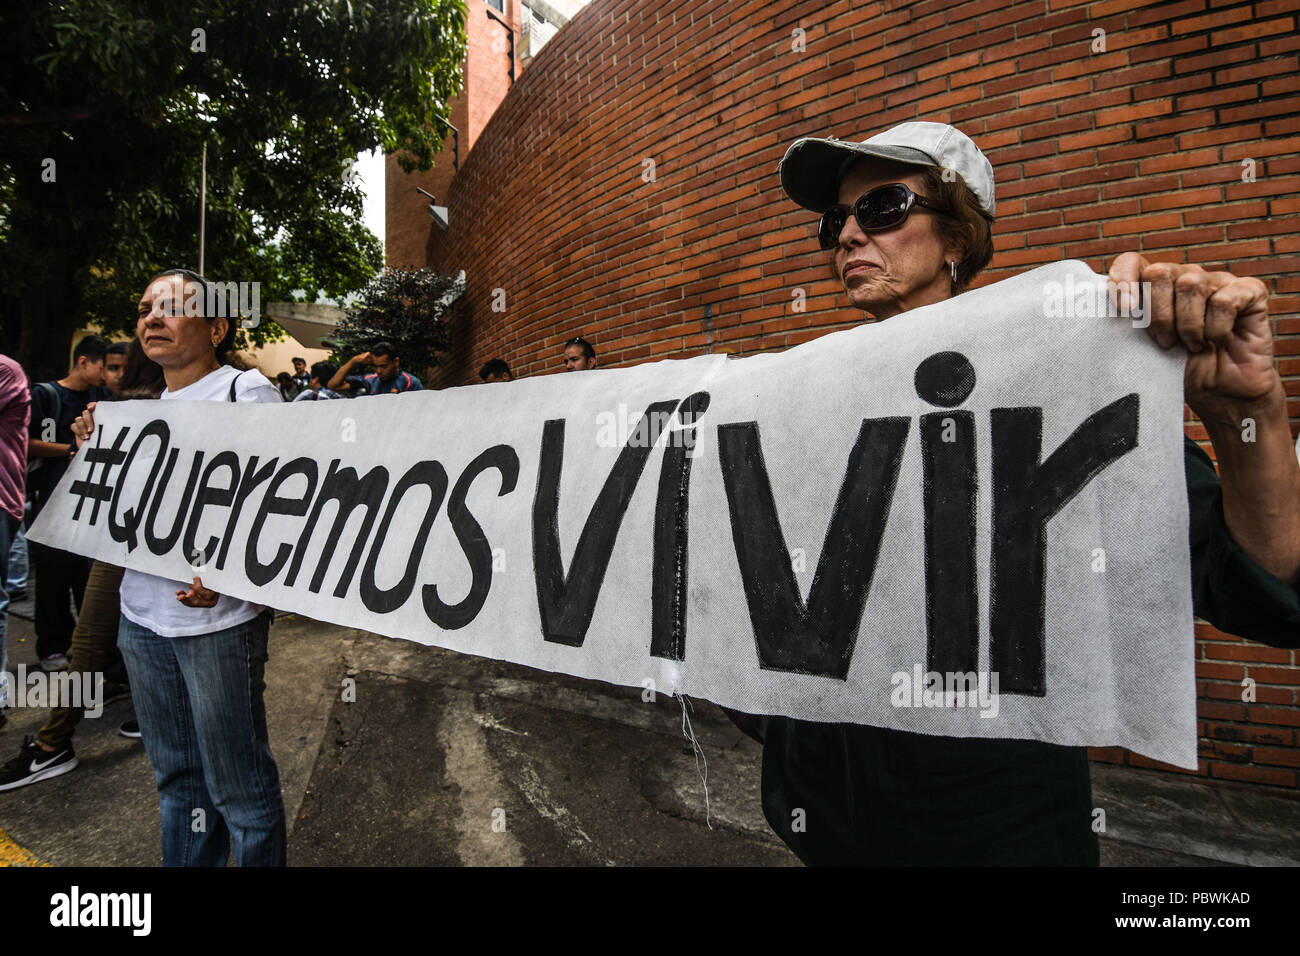 Caracas, Miranda, Venezuela. 30th July, 2018. Relatives of sick patients seen holding a banner during the demonstration.Nurses, doctors and patients protest in front of the World Health Organization offices in Caracas for the lack of medicines and treatment in the hospitals. The government led by President Nicolas Maduro still does not solve the problem in the health sector and does not allow the humanitarian aid of other nations. Credit: Roman Camacho/SOPA Images/ZUMA Wire/Alamy Live News Stock Photo